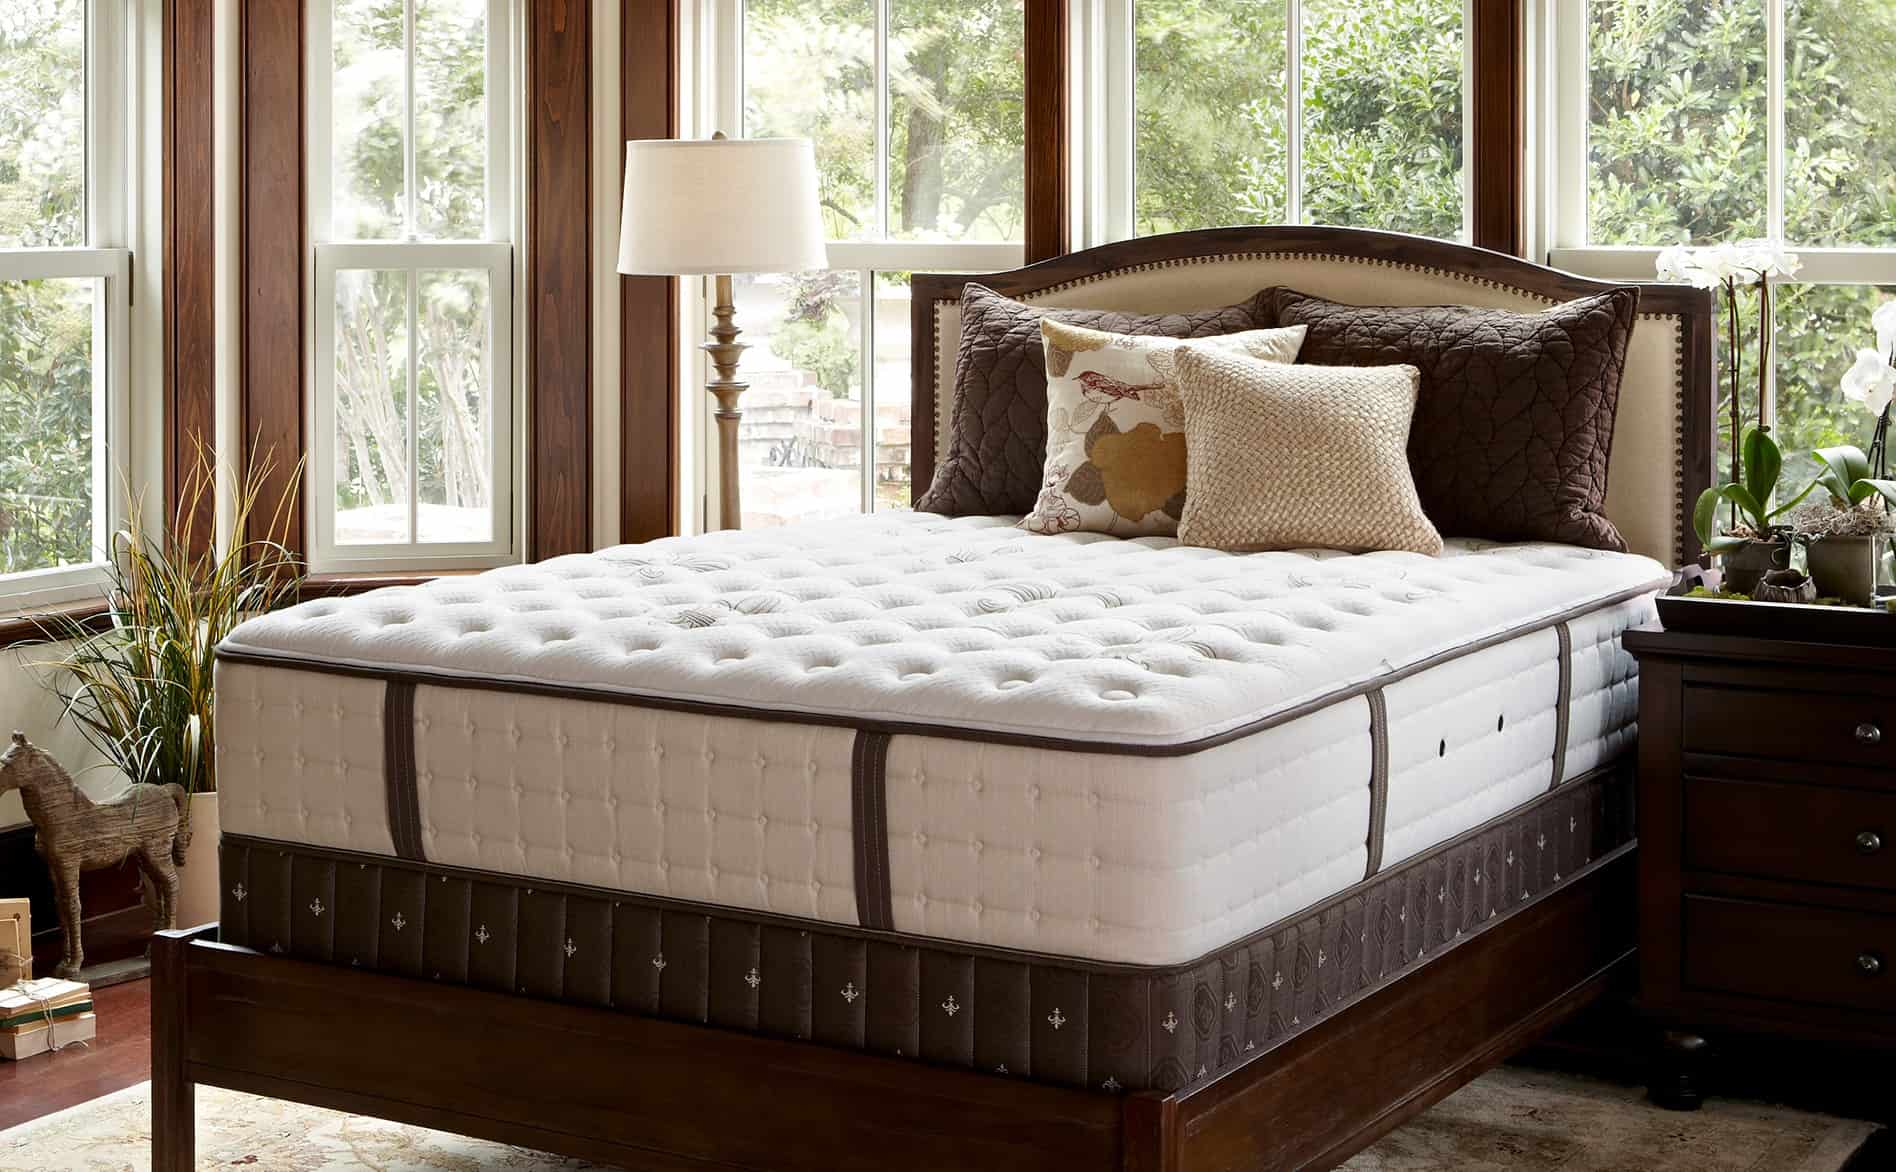 faqs on ghostbed mattress mattress buying guide